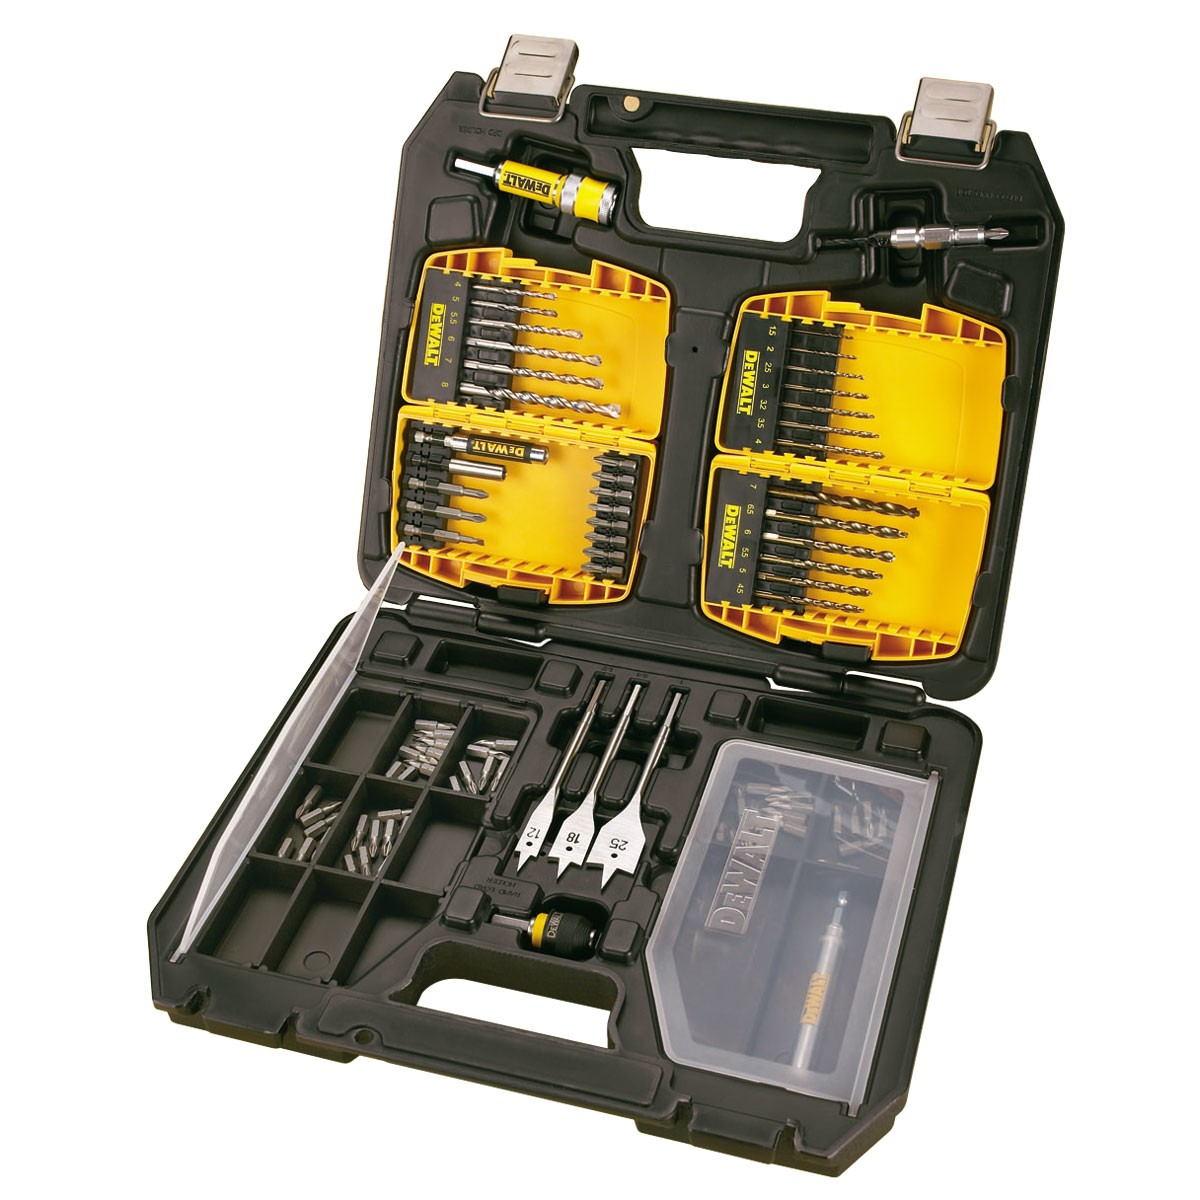 DeWalt DT9296 90 Piece Masonry / Metal Drilling & Screwdriving Set